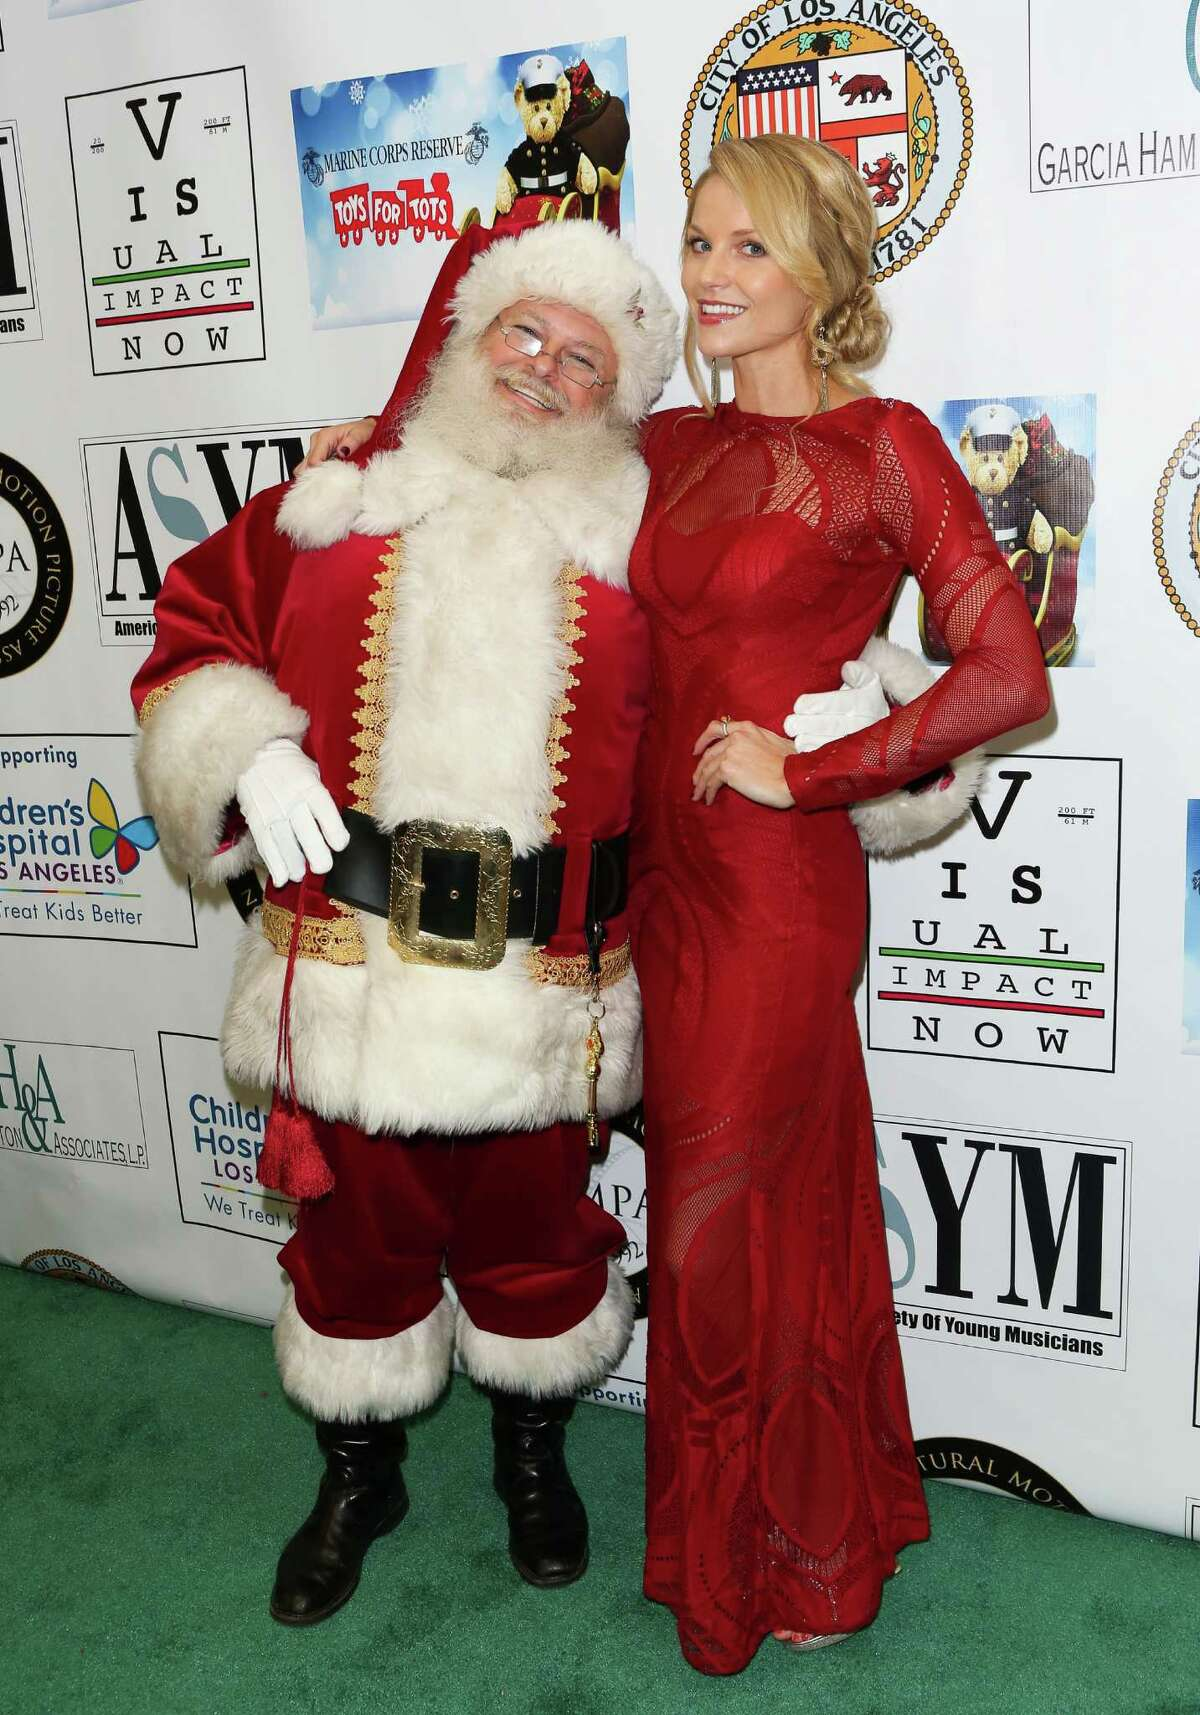 Actress Ellen Hollman attends the 16th annual Hollywood Celebrity Toy Drive Extravaganza on Dec. 17, 2015 in Los Angeles.